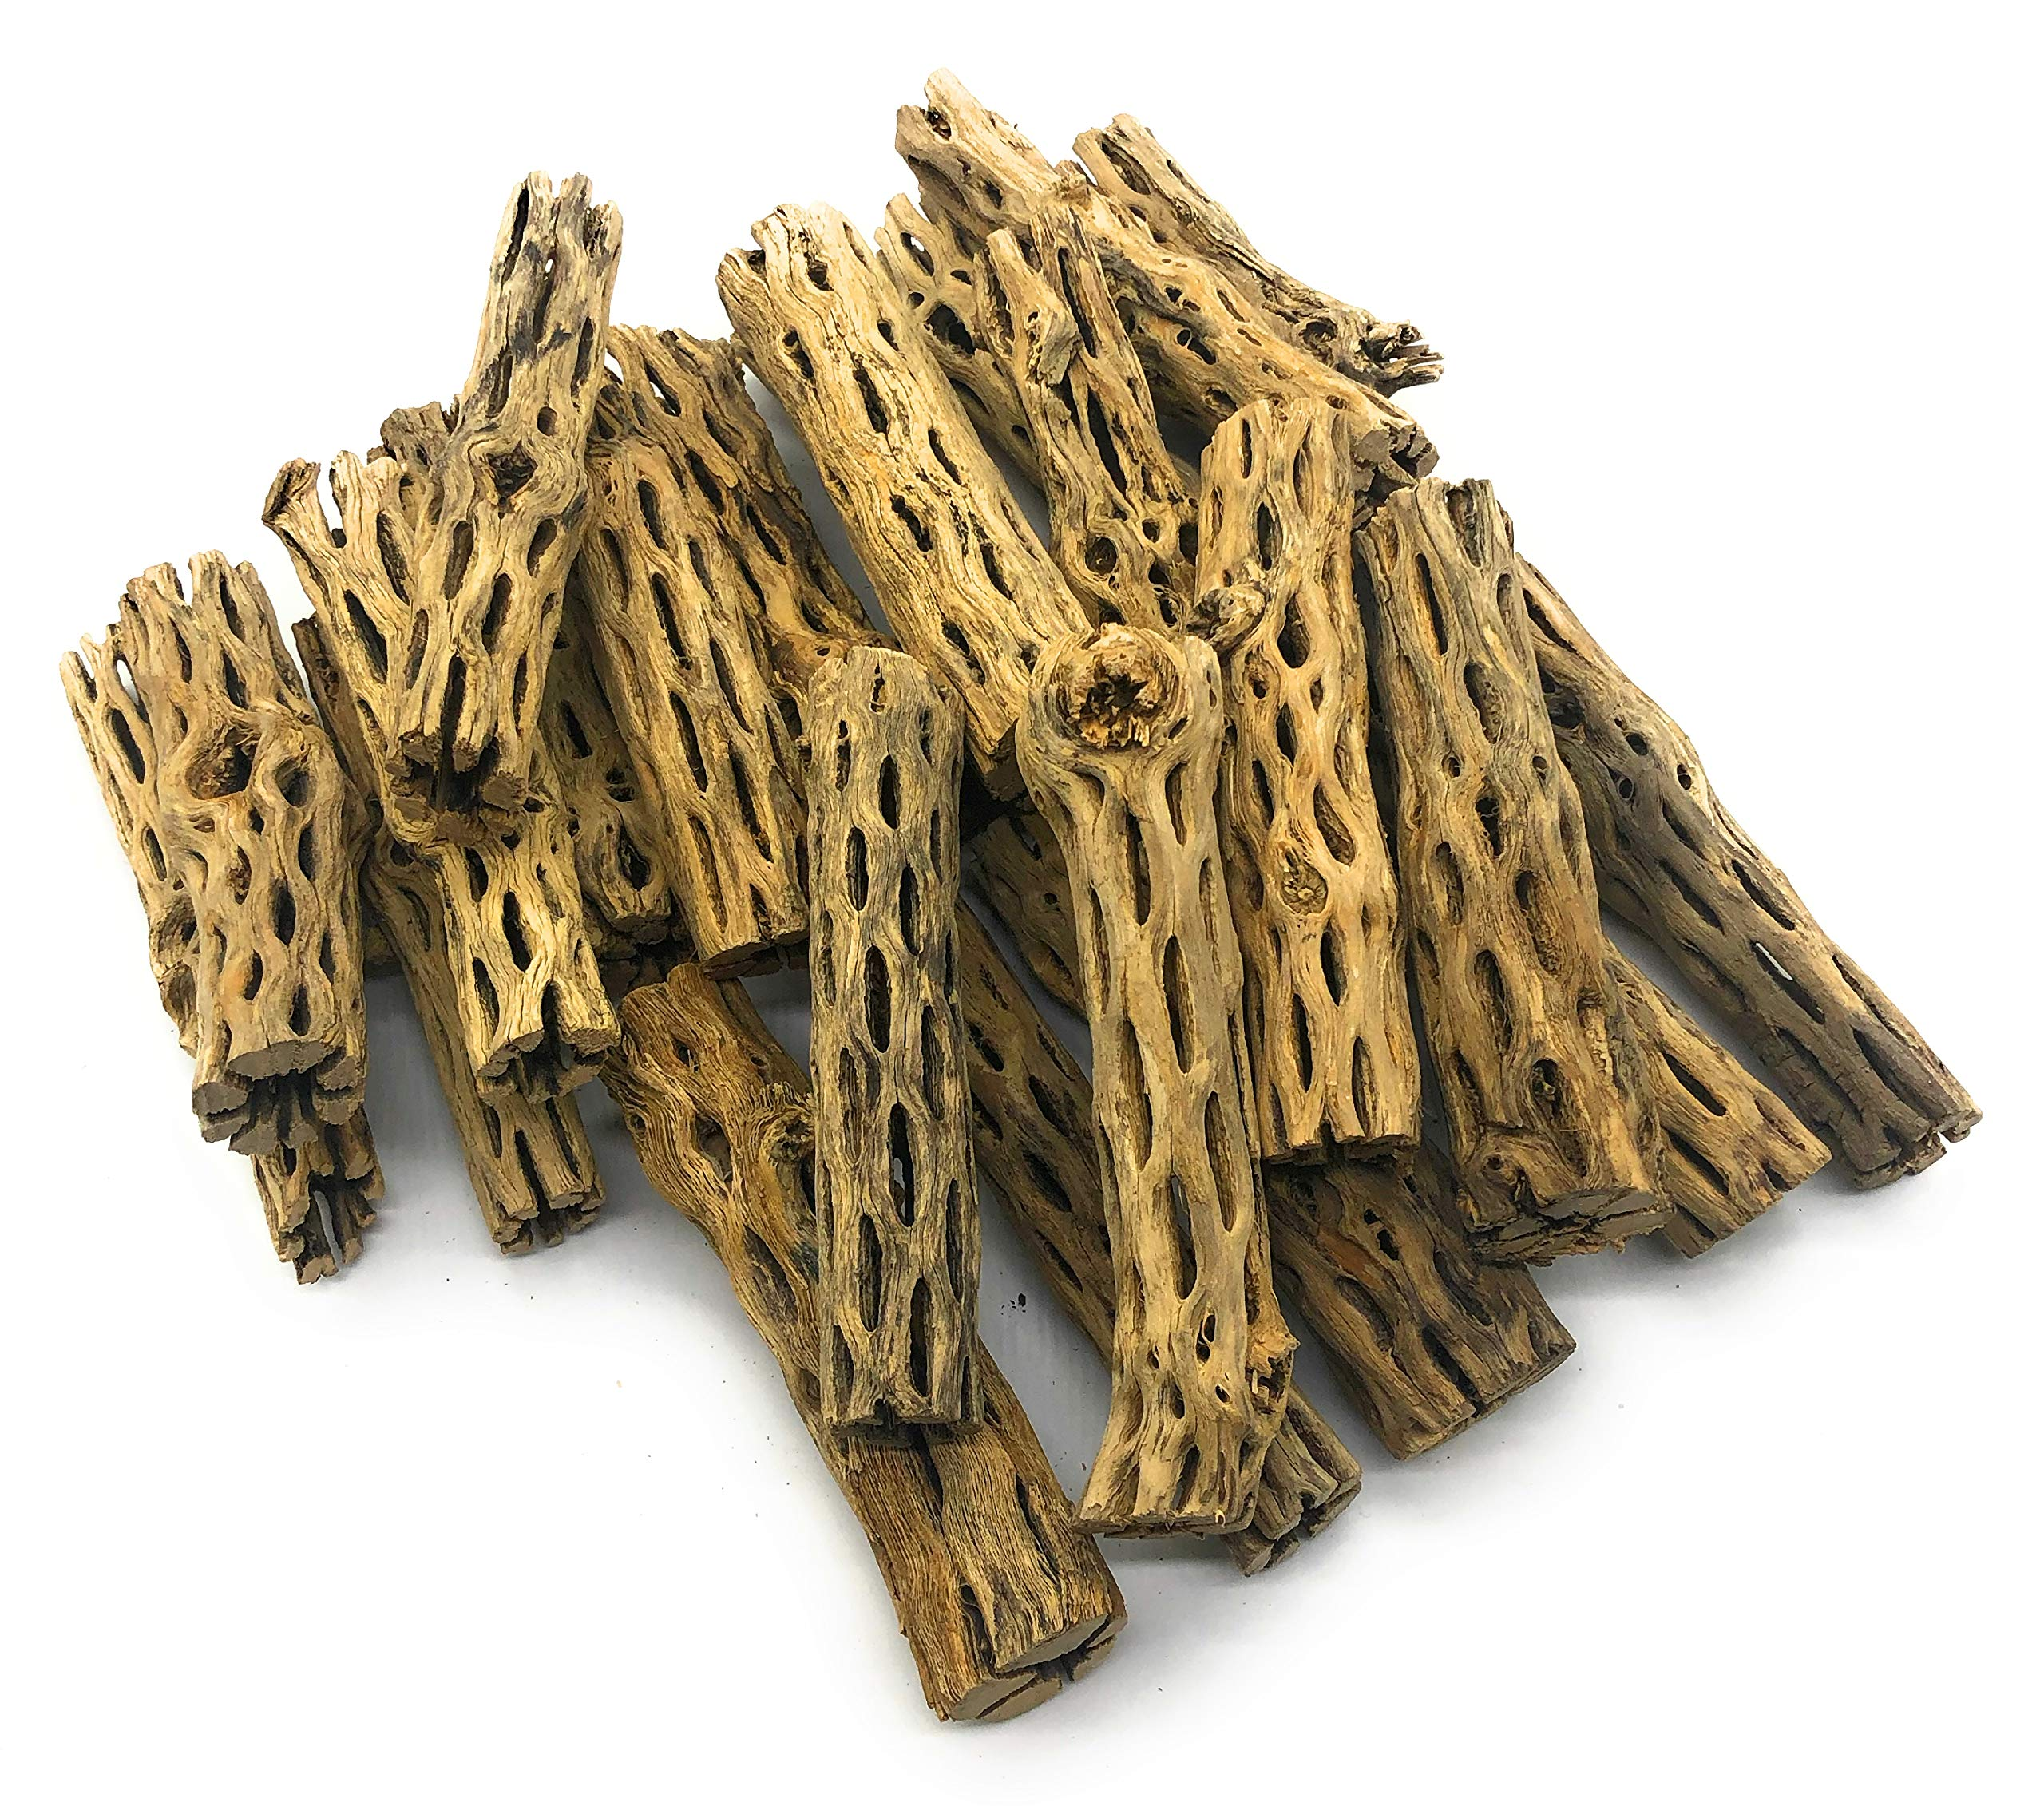 SubstrateSource ''Cholla Wood Aquarium Driftwood 6 Inches (25 Pieces) by SubstrateSource